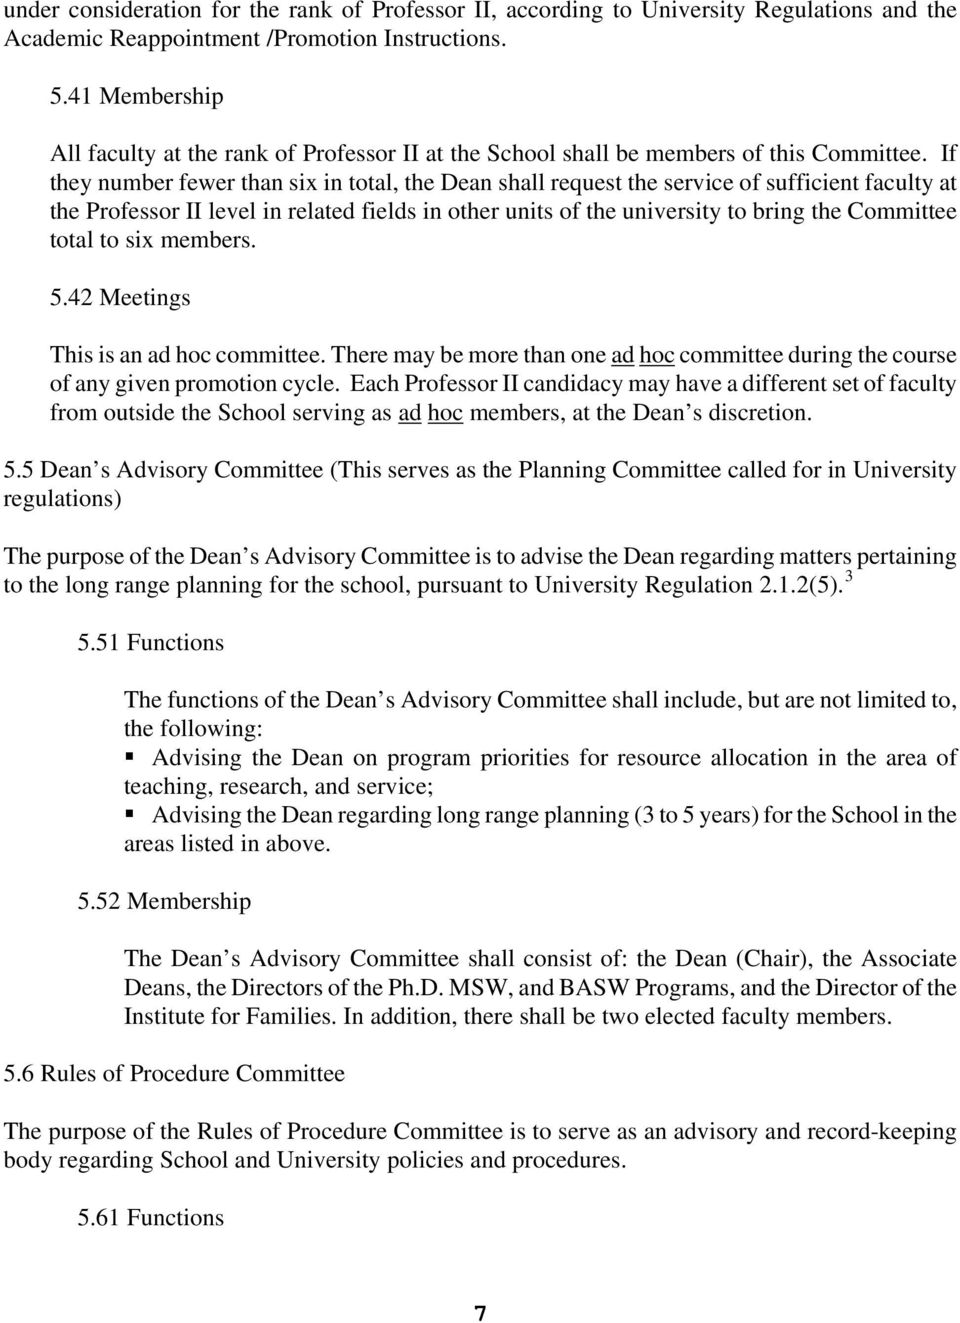 If they number fewer than six in total, the Dean shall request the service of sufficient faculty at the Professor II level in related fields in other units of the university to bring the Committee